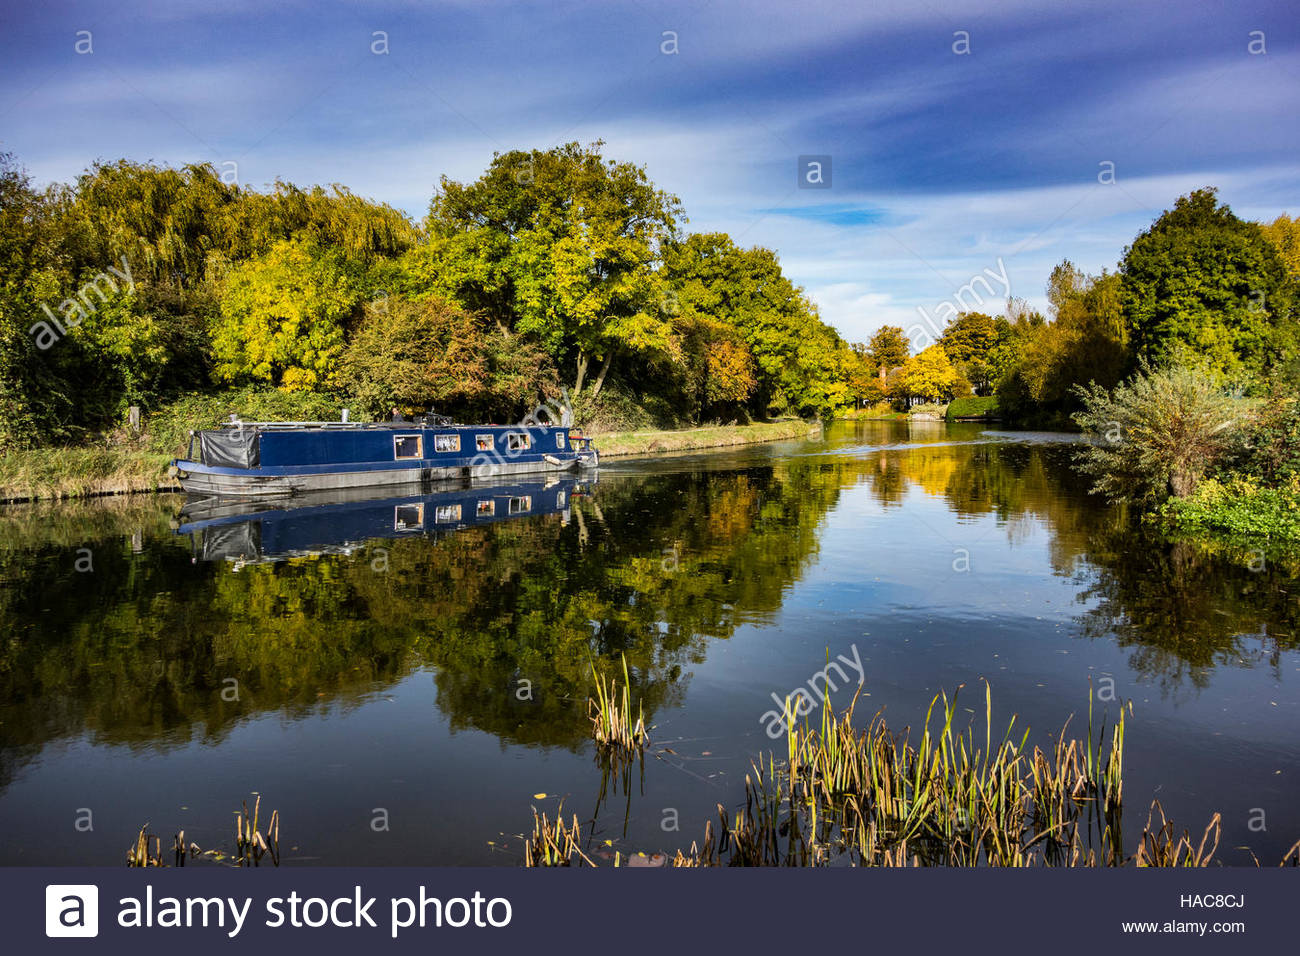 Narrowboat on the River Cam near to Fen Ditton with the reflection of the autumn colours in the water. - Stock Image